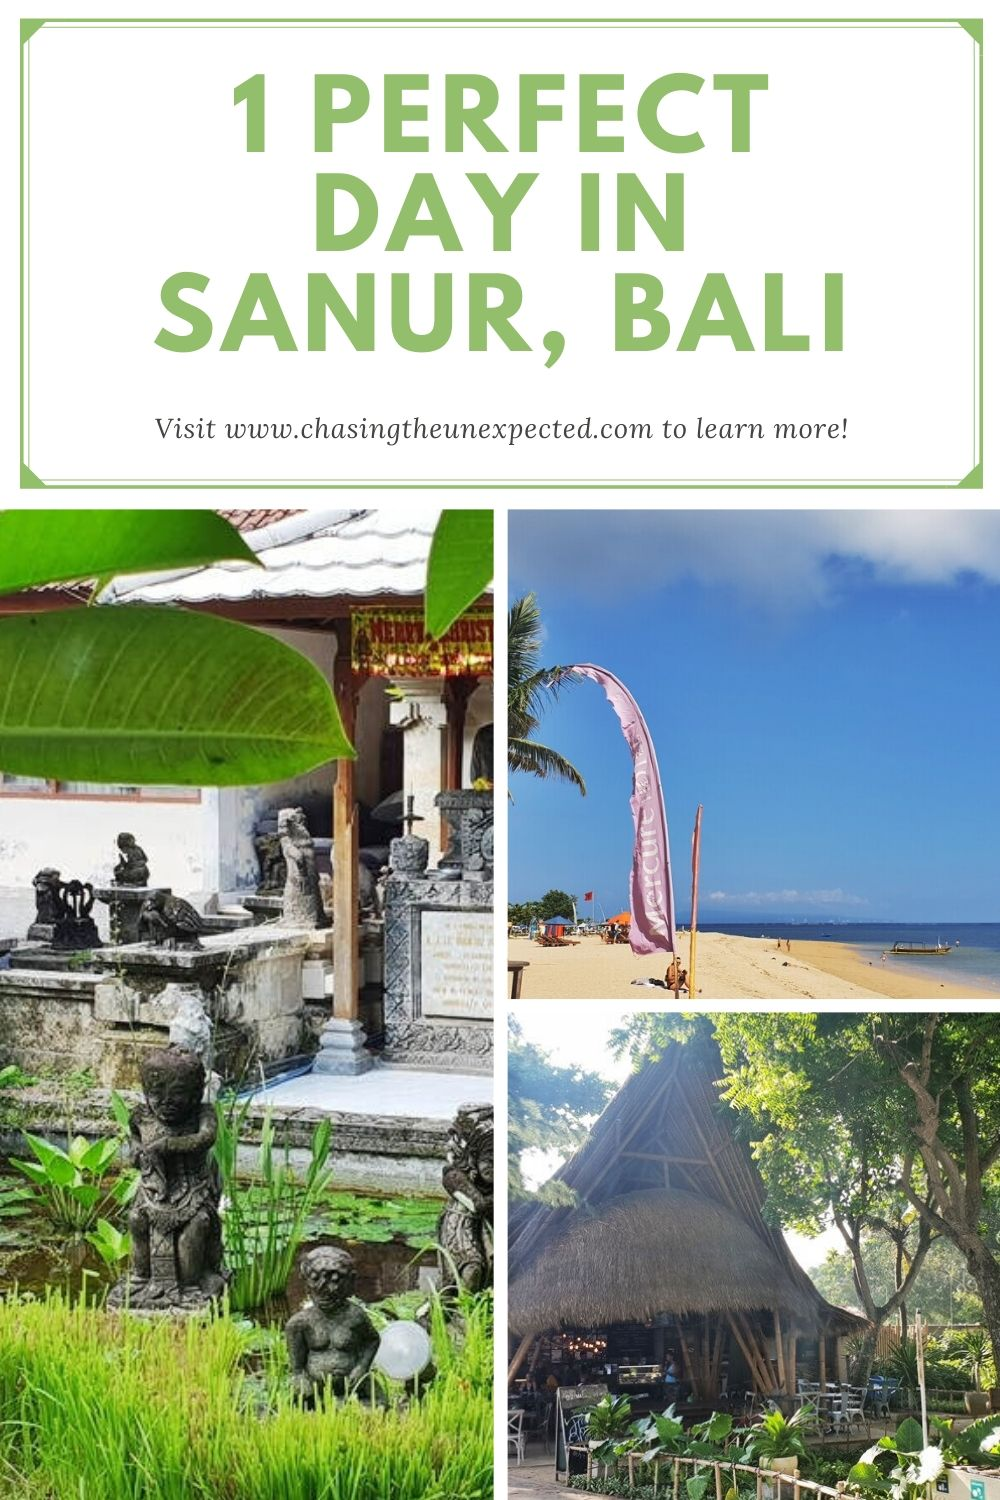 """Pinterest image: Three images of Sanur with caption reading """"1 perfect day in Sanur, Bali"""""""